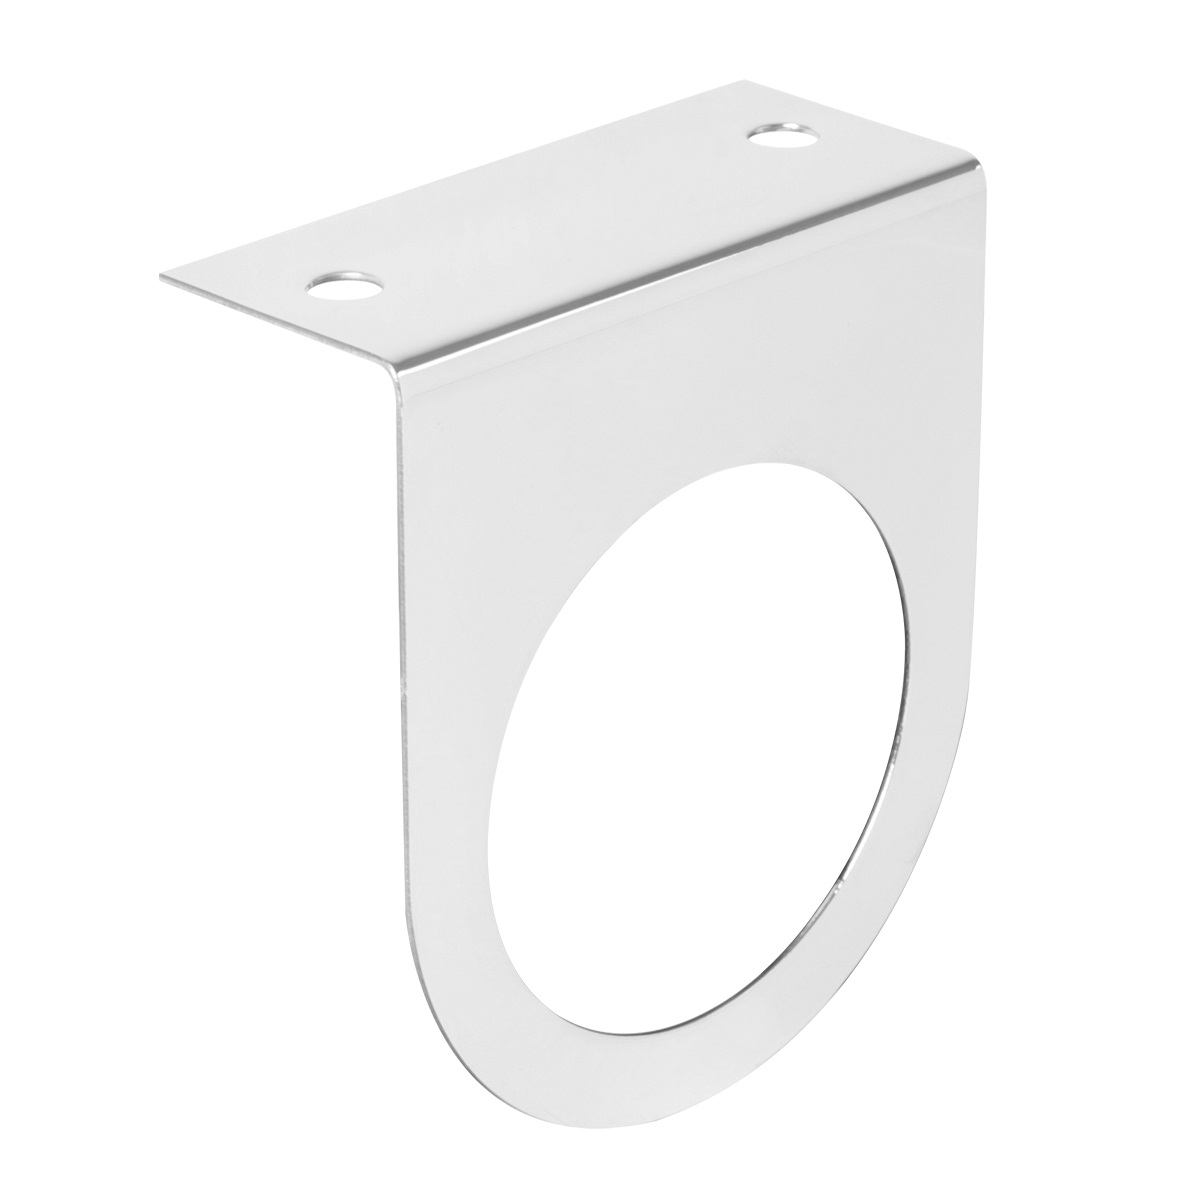 Chrome Plated Steel Light Mounting Bracket Only